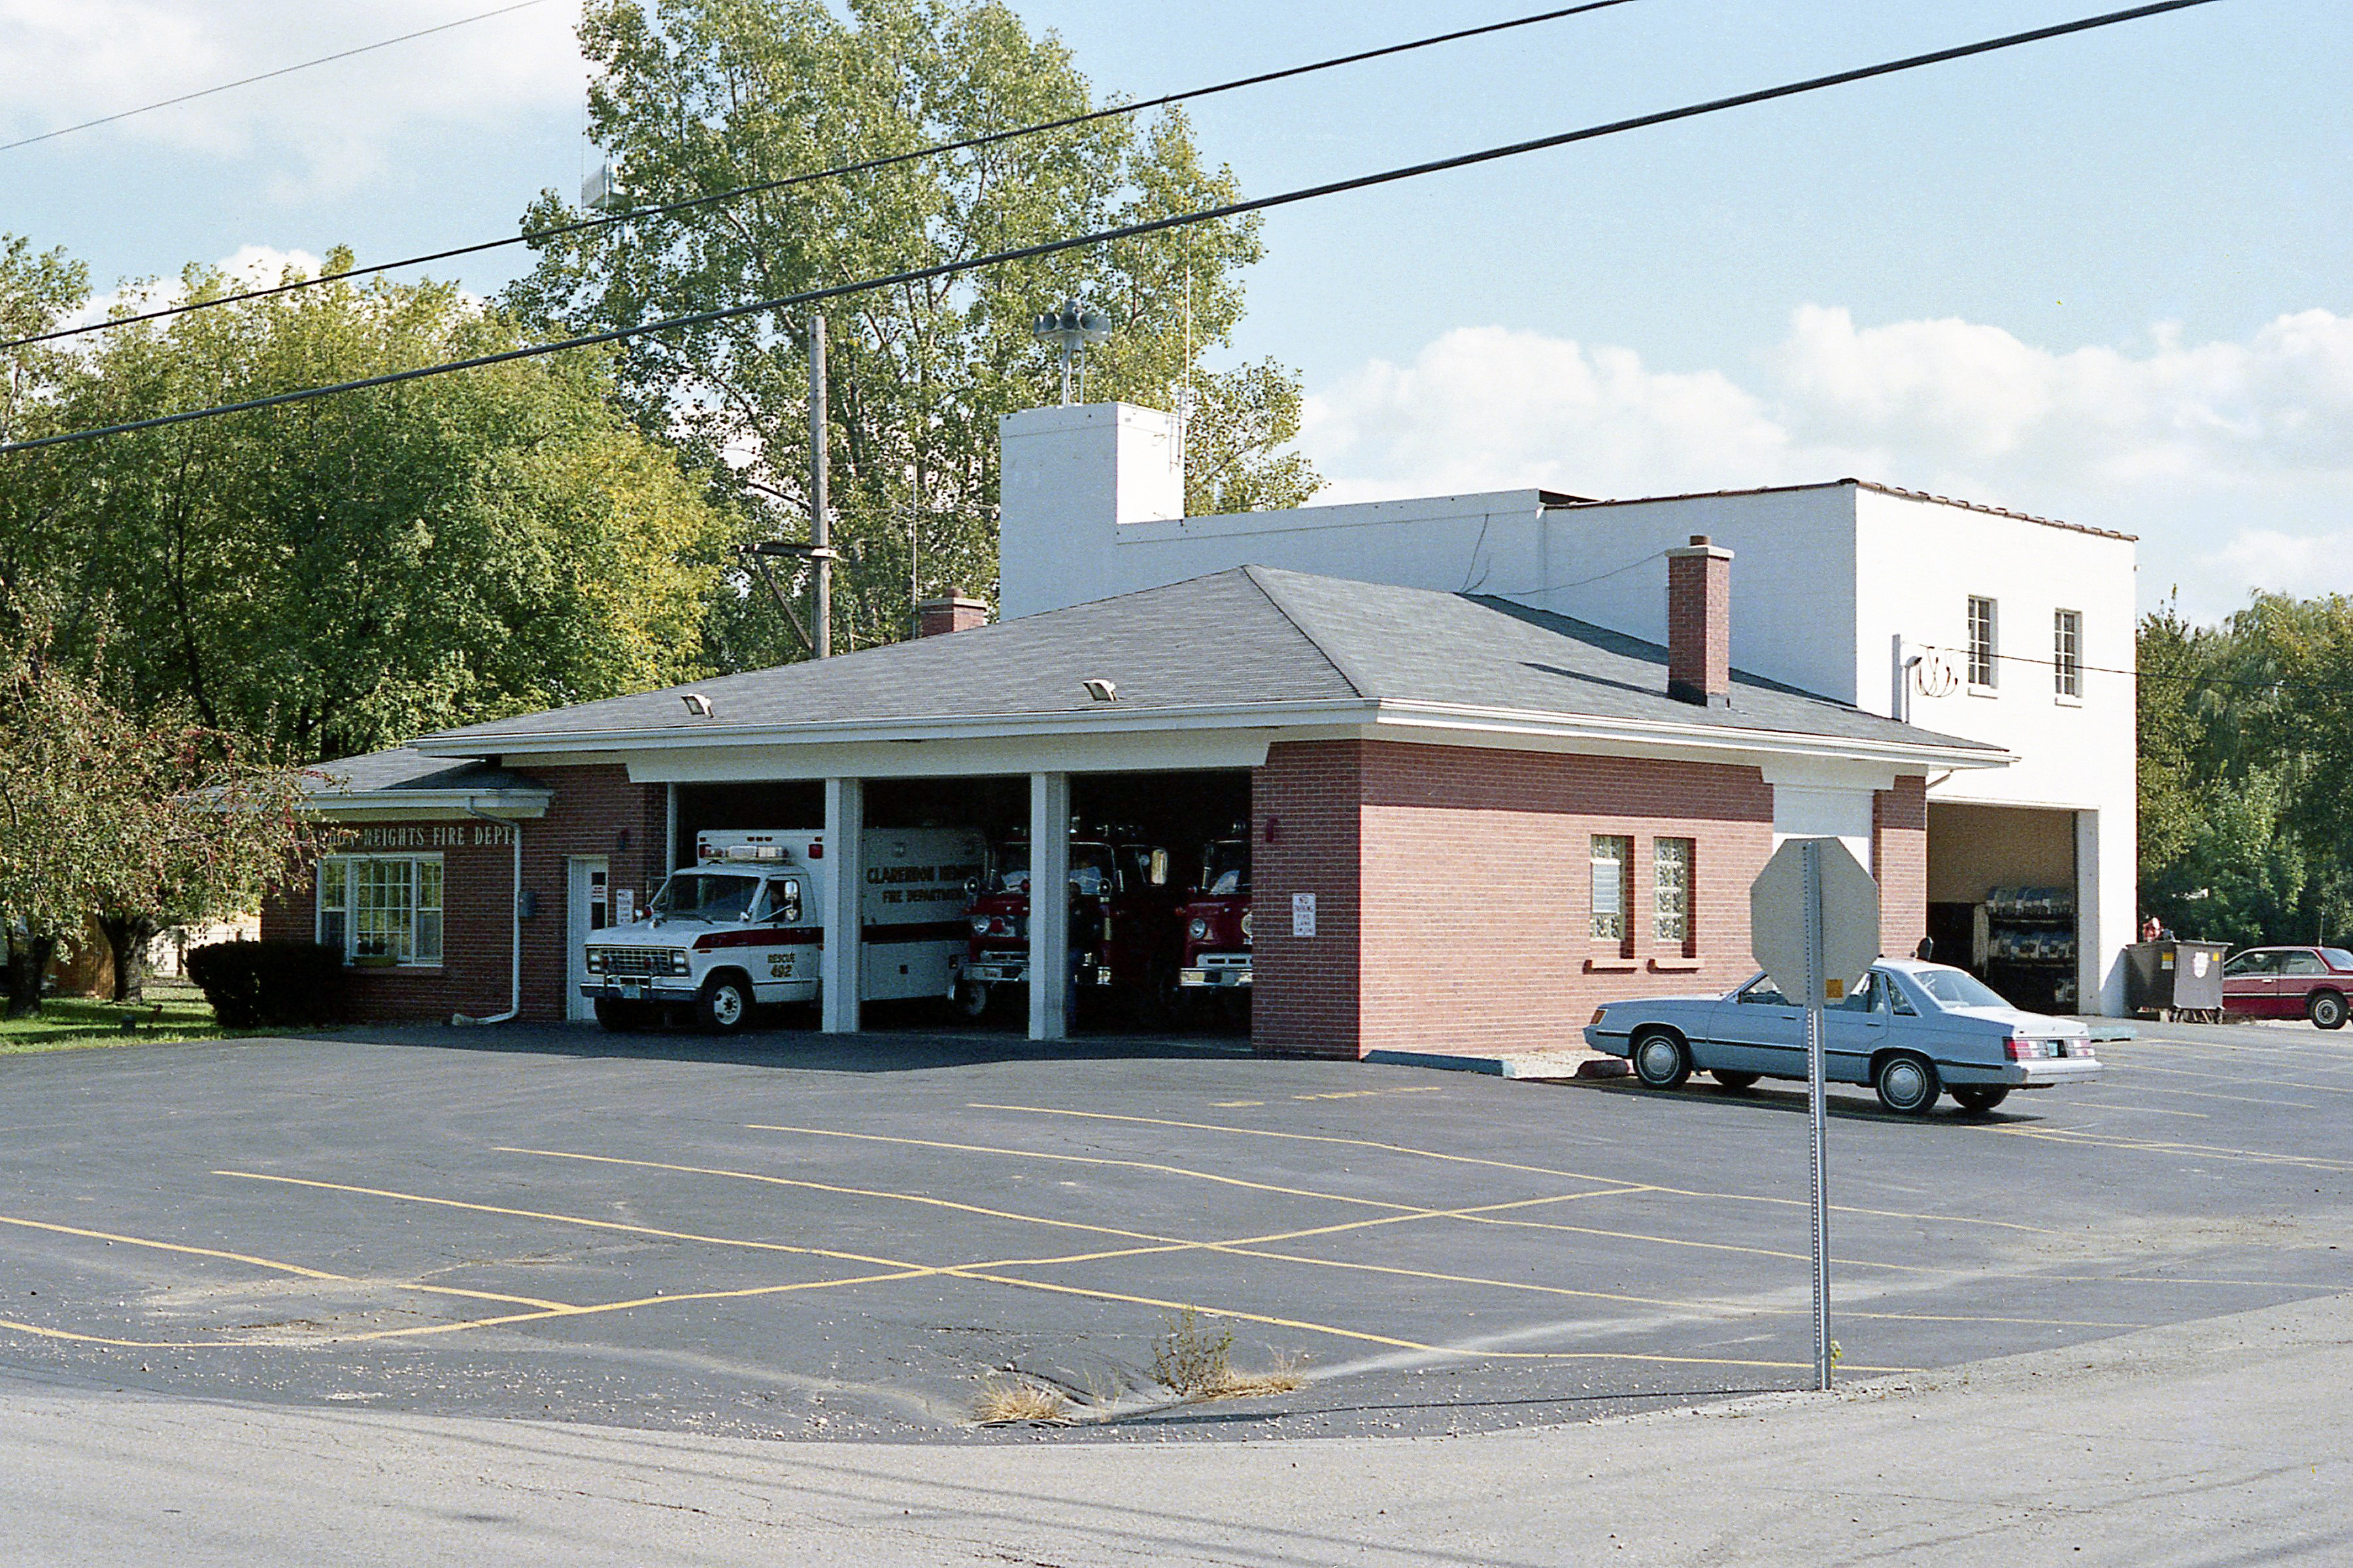 CLARENDON HEIGHTS FPD STATION